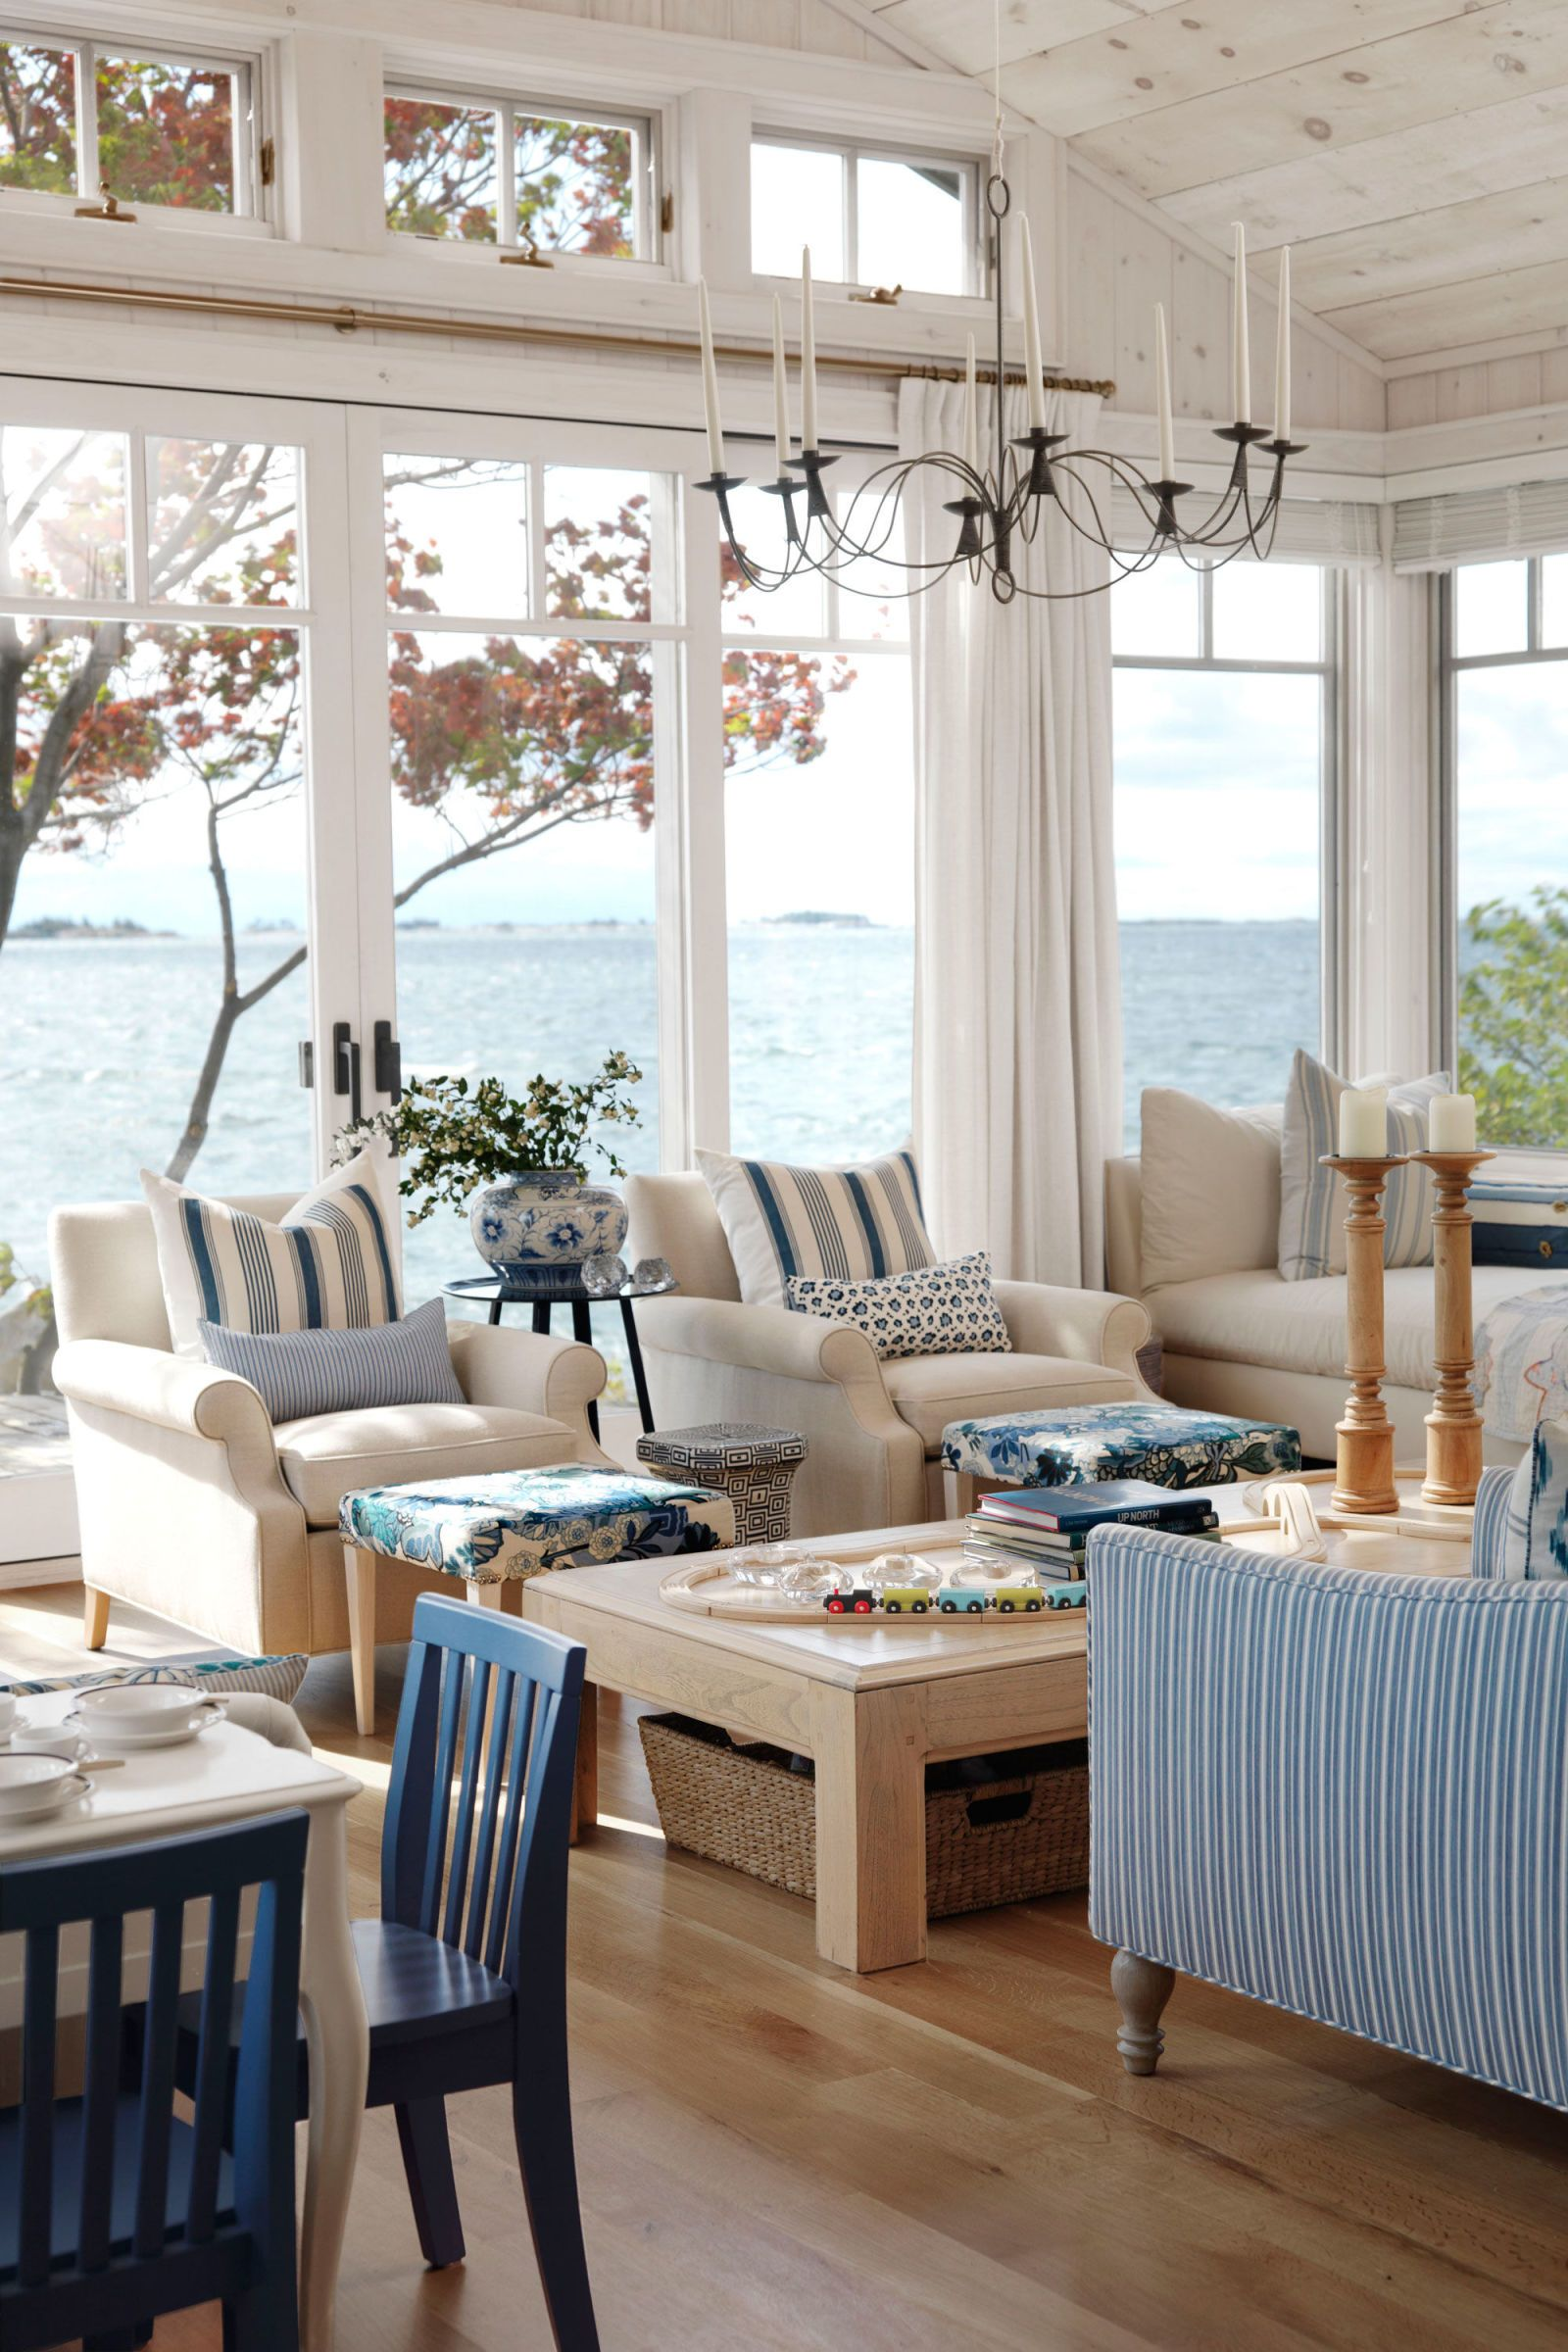 Bring Beach Vibes Into Any Home With These Decor Ideas Beach